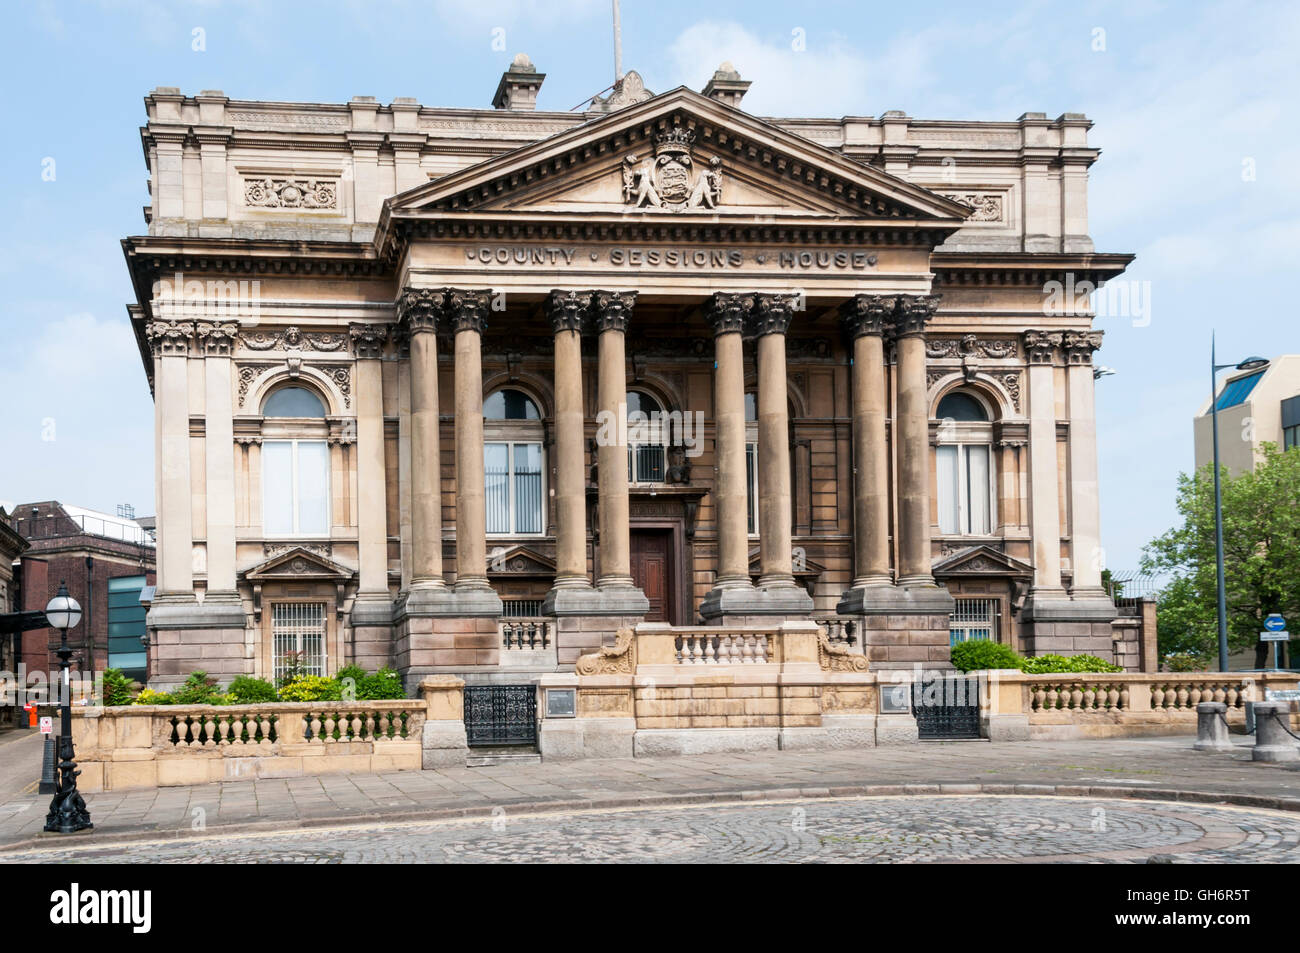 The former County Sessions House in William Brown Street, Liverpool. - Stock Image